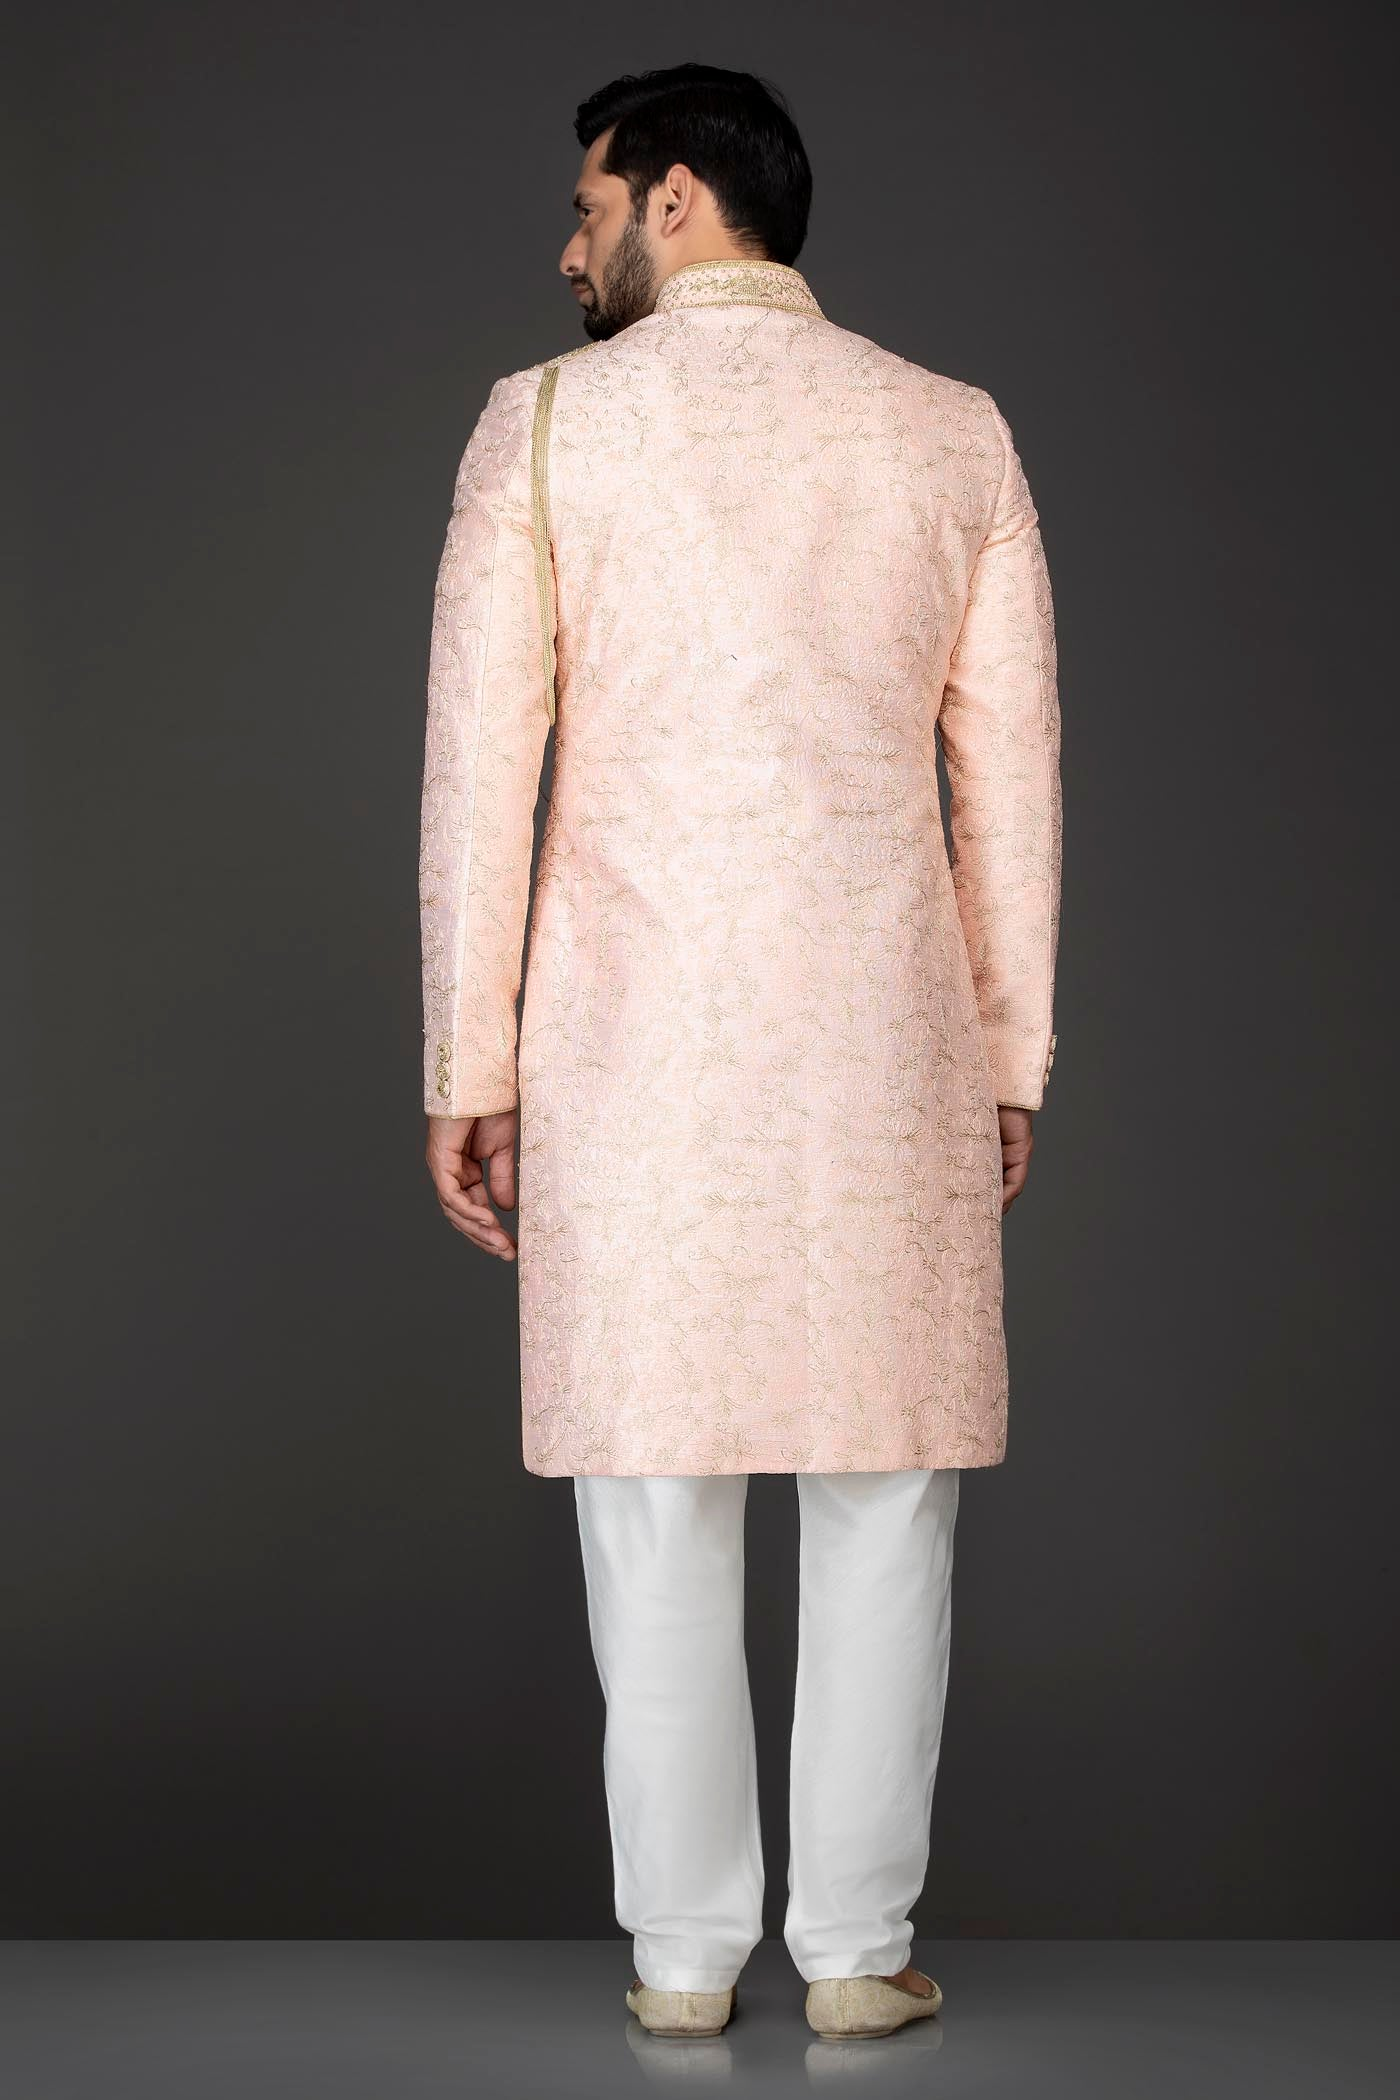 Peach Silk Sherwani With Embroidery On The Collar And Shoulder Brooch With Hanging Tassels Paired With White Trousers